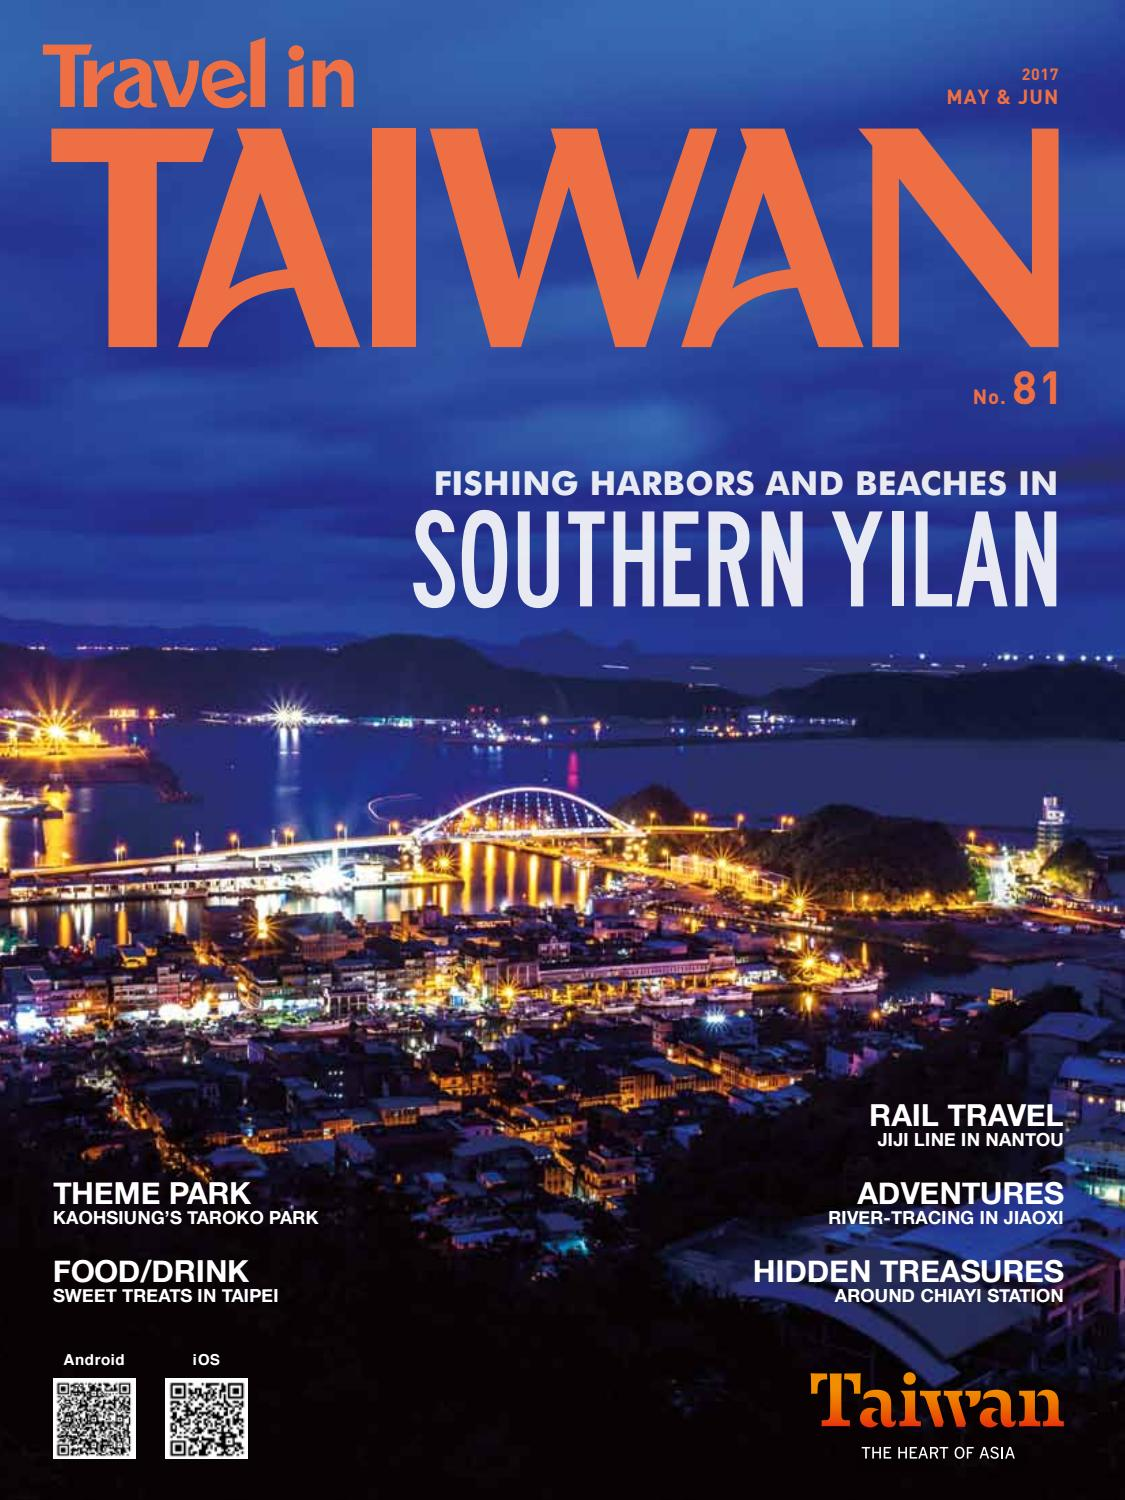 Travel in Taiwan (No 81 2017 05/06 ) by Travel in Taiwan - issuu